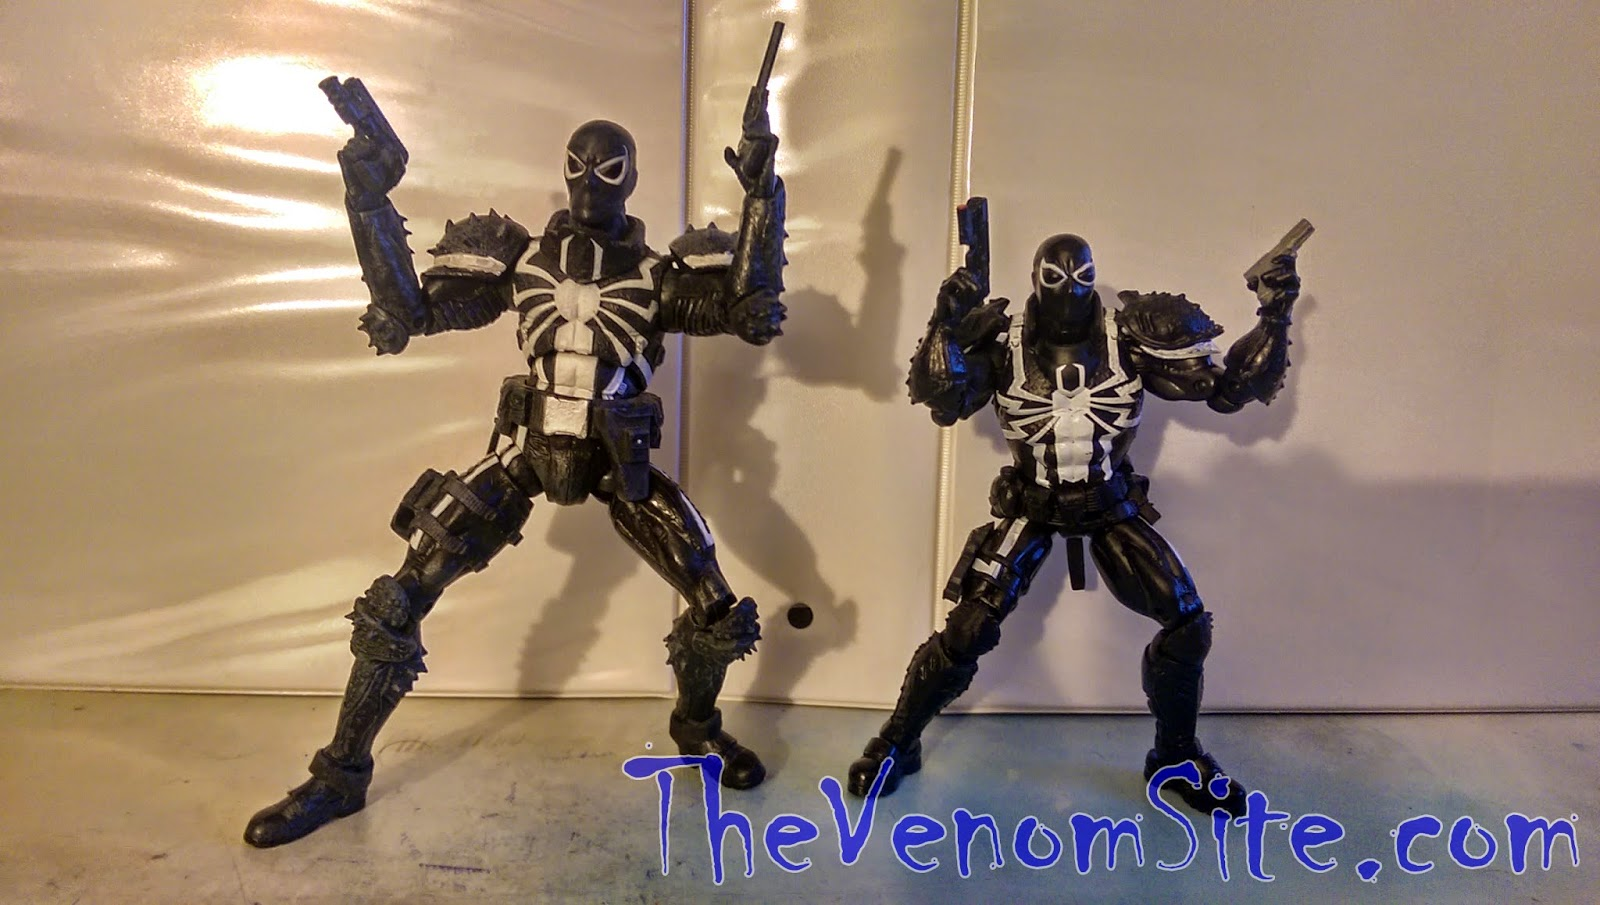 Petition Diamond Select Toys to reissue the Disney Store exclusive Marvel Select Agent Venom figure